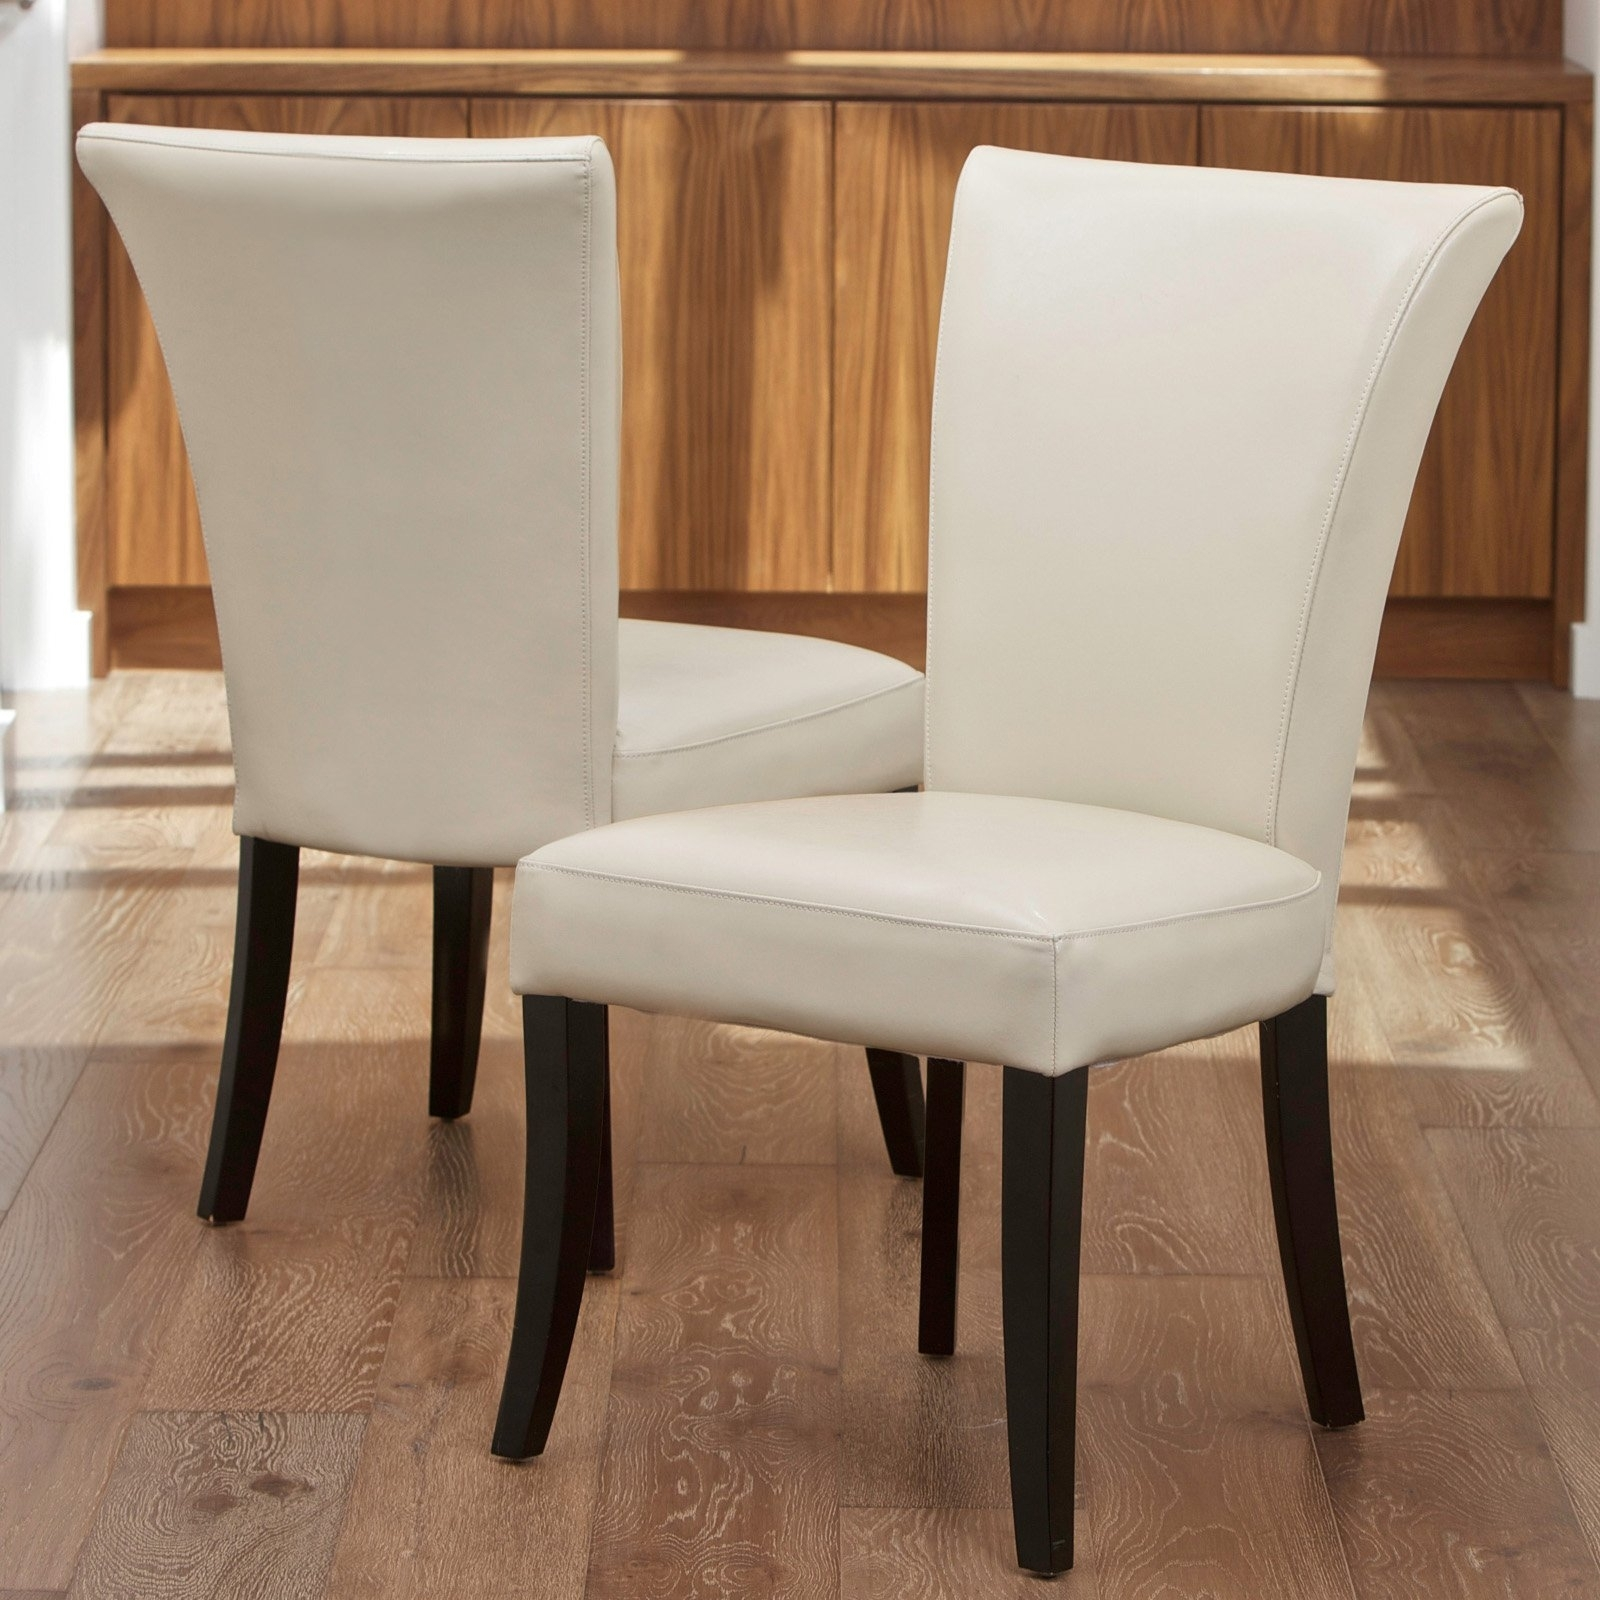 2018 Ivory Leather Dining Chairs Inside Stanford Ivory Leather Dining Chairs – 2 Pack – Walmart (View 11 of 25)